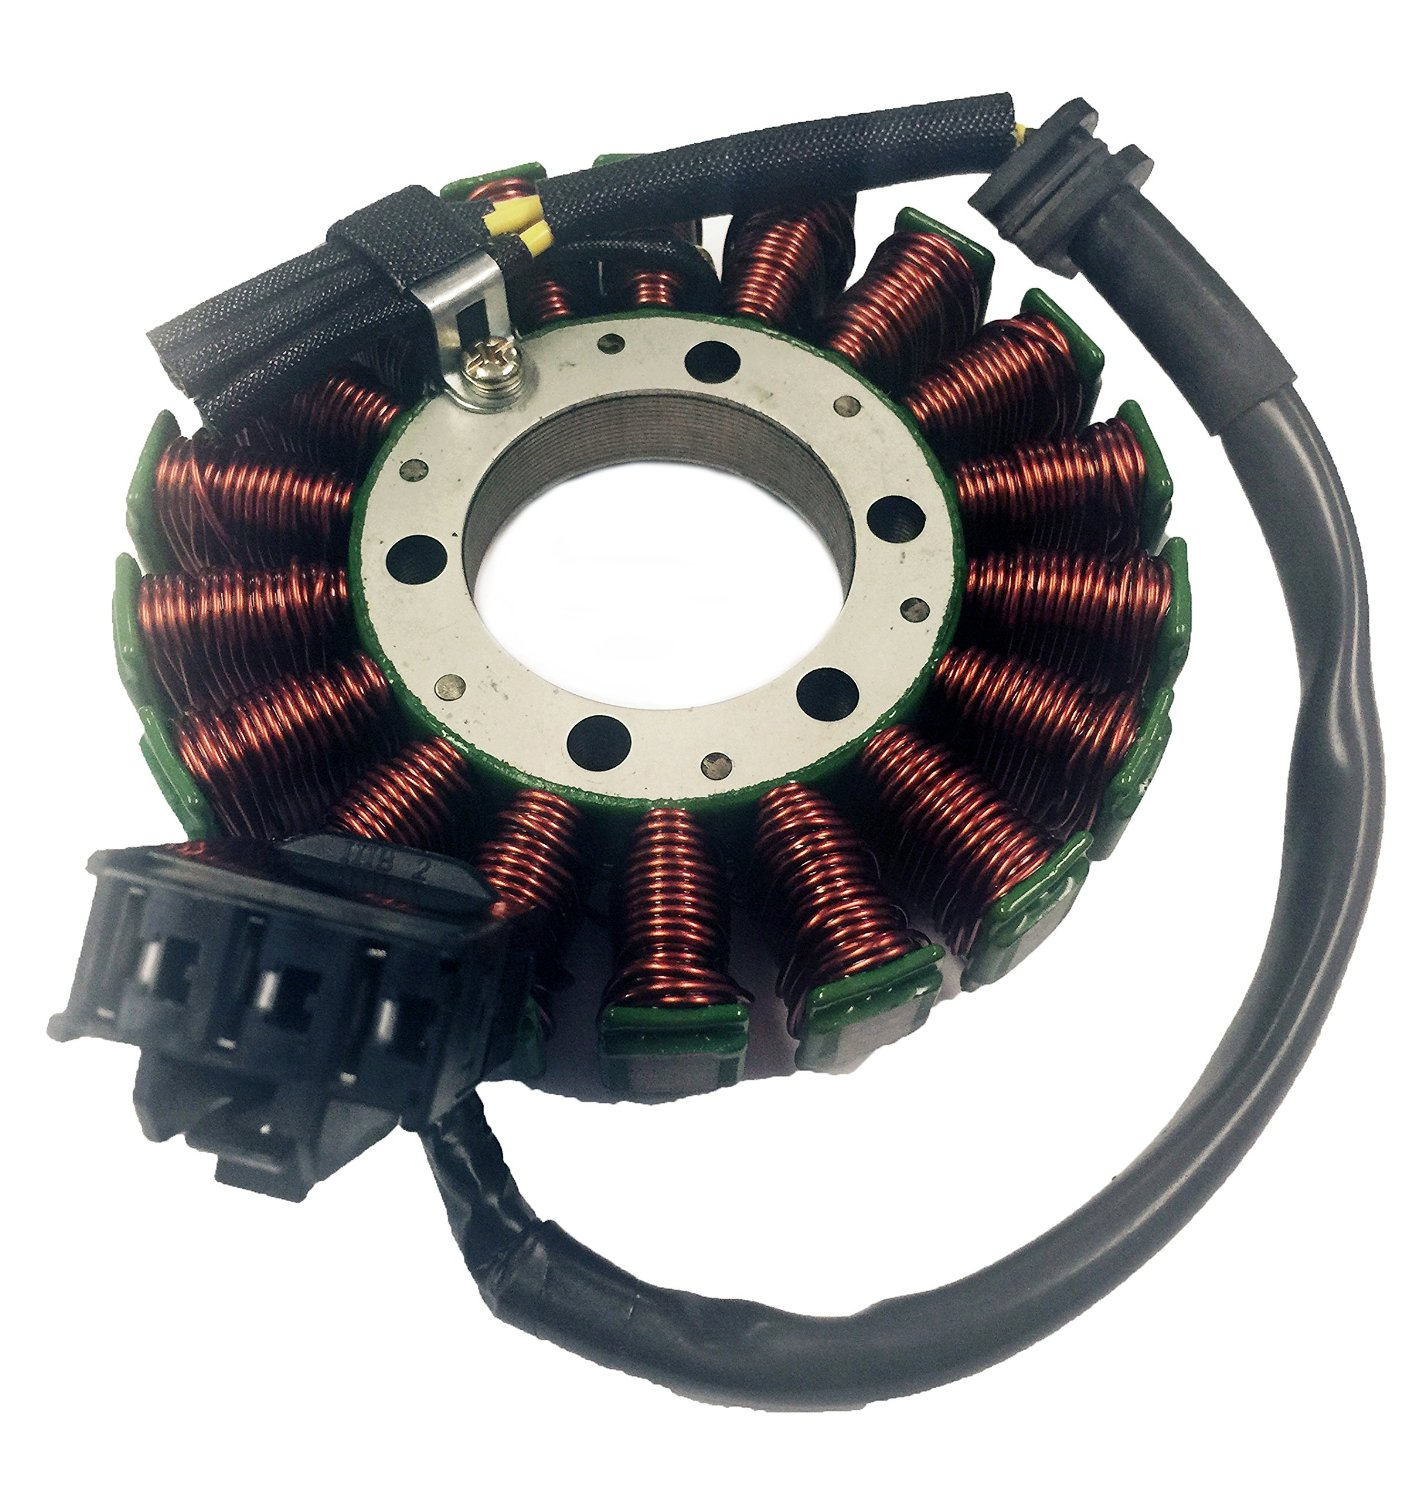 Cheap Generator Alternator Find Deals On Line Stator Diode Wire Wiring Harness For Briggs And Get Quotations New Magneto Honda 2006 2007 Cbr1000 Rr 1000 R